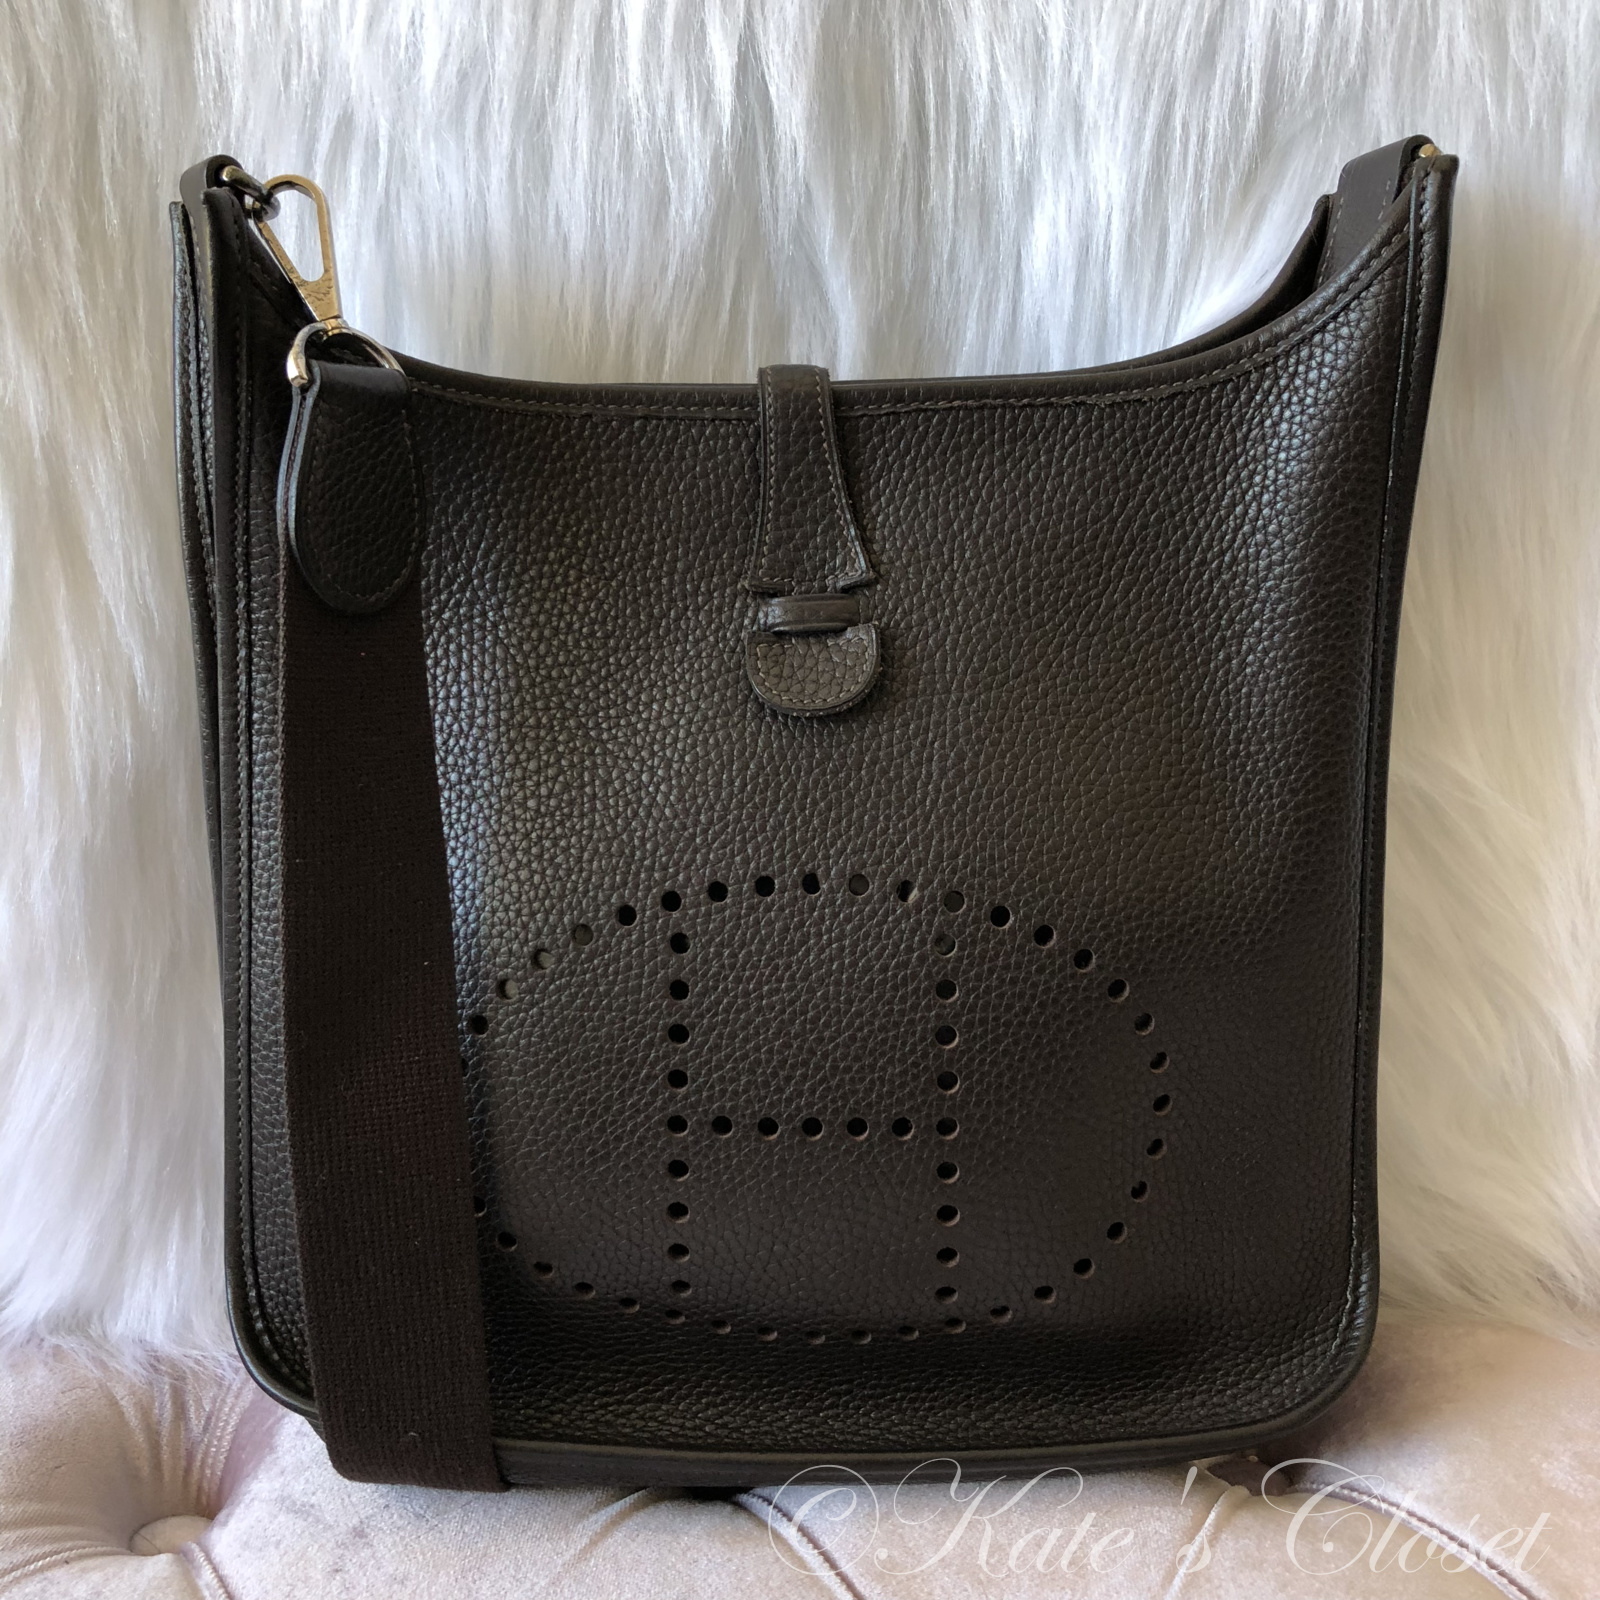 HERMES Evelyne II Clemence Dark Brown Leather Cross Body Bag